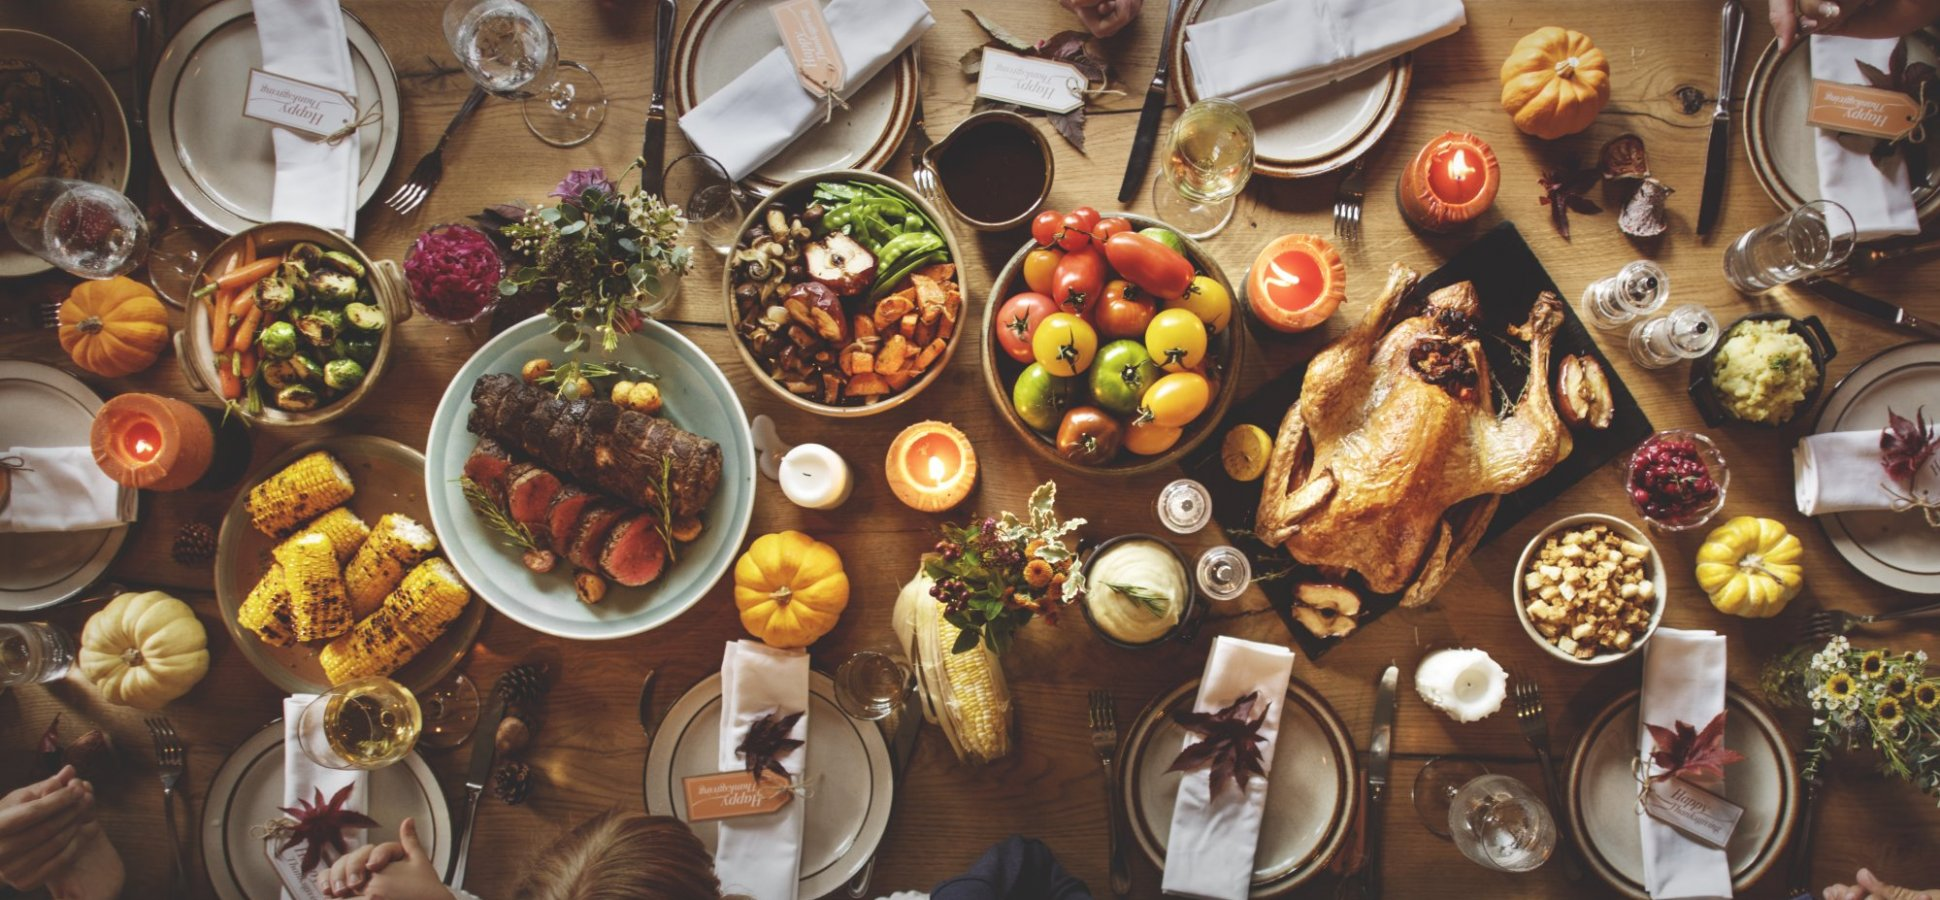 7 Brilliant Tricks Emotionally Intelligent People Use on Thanksgiving